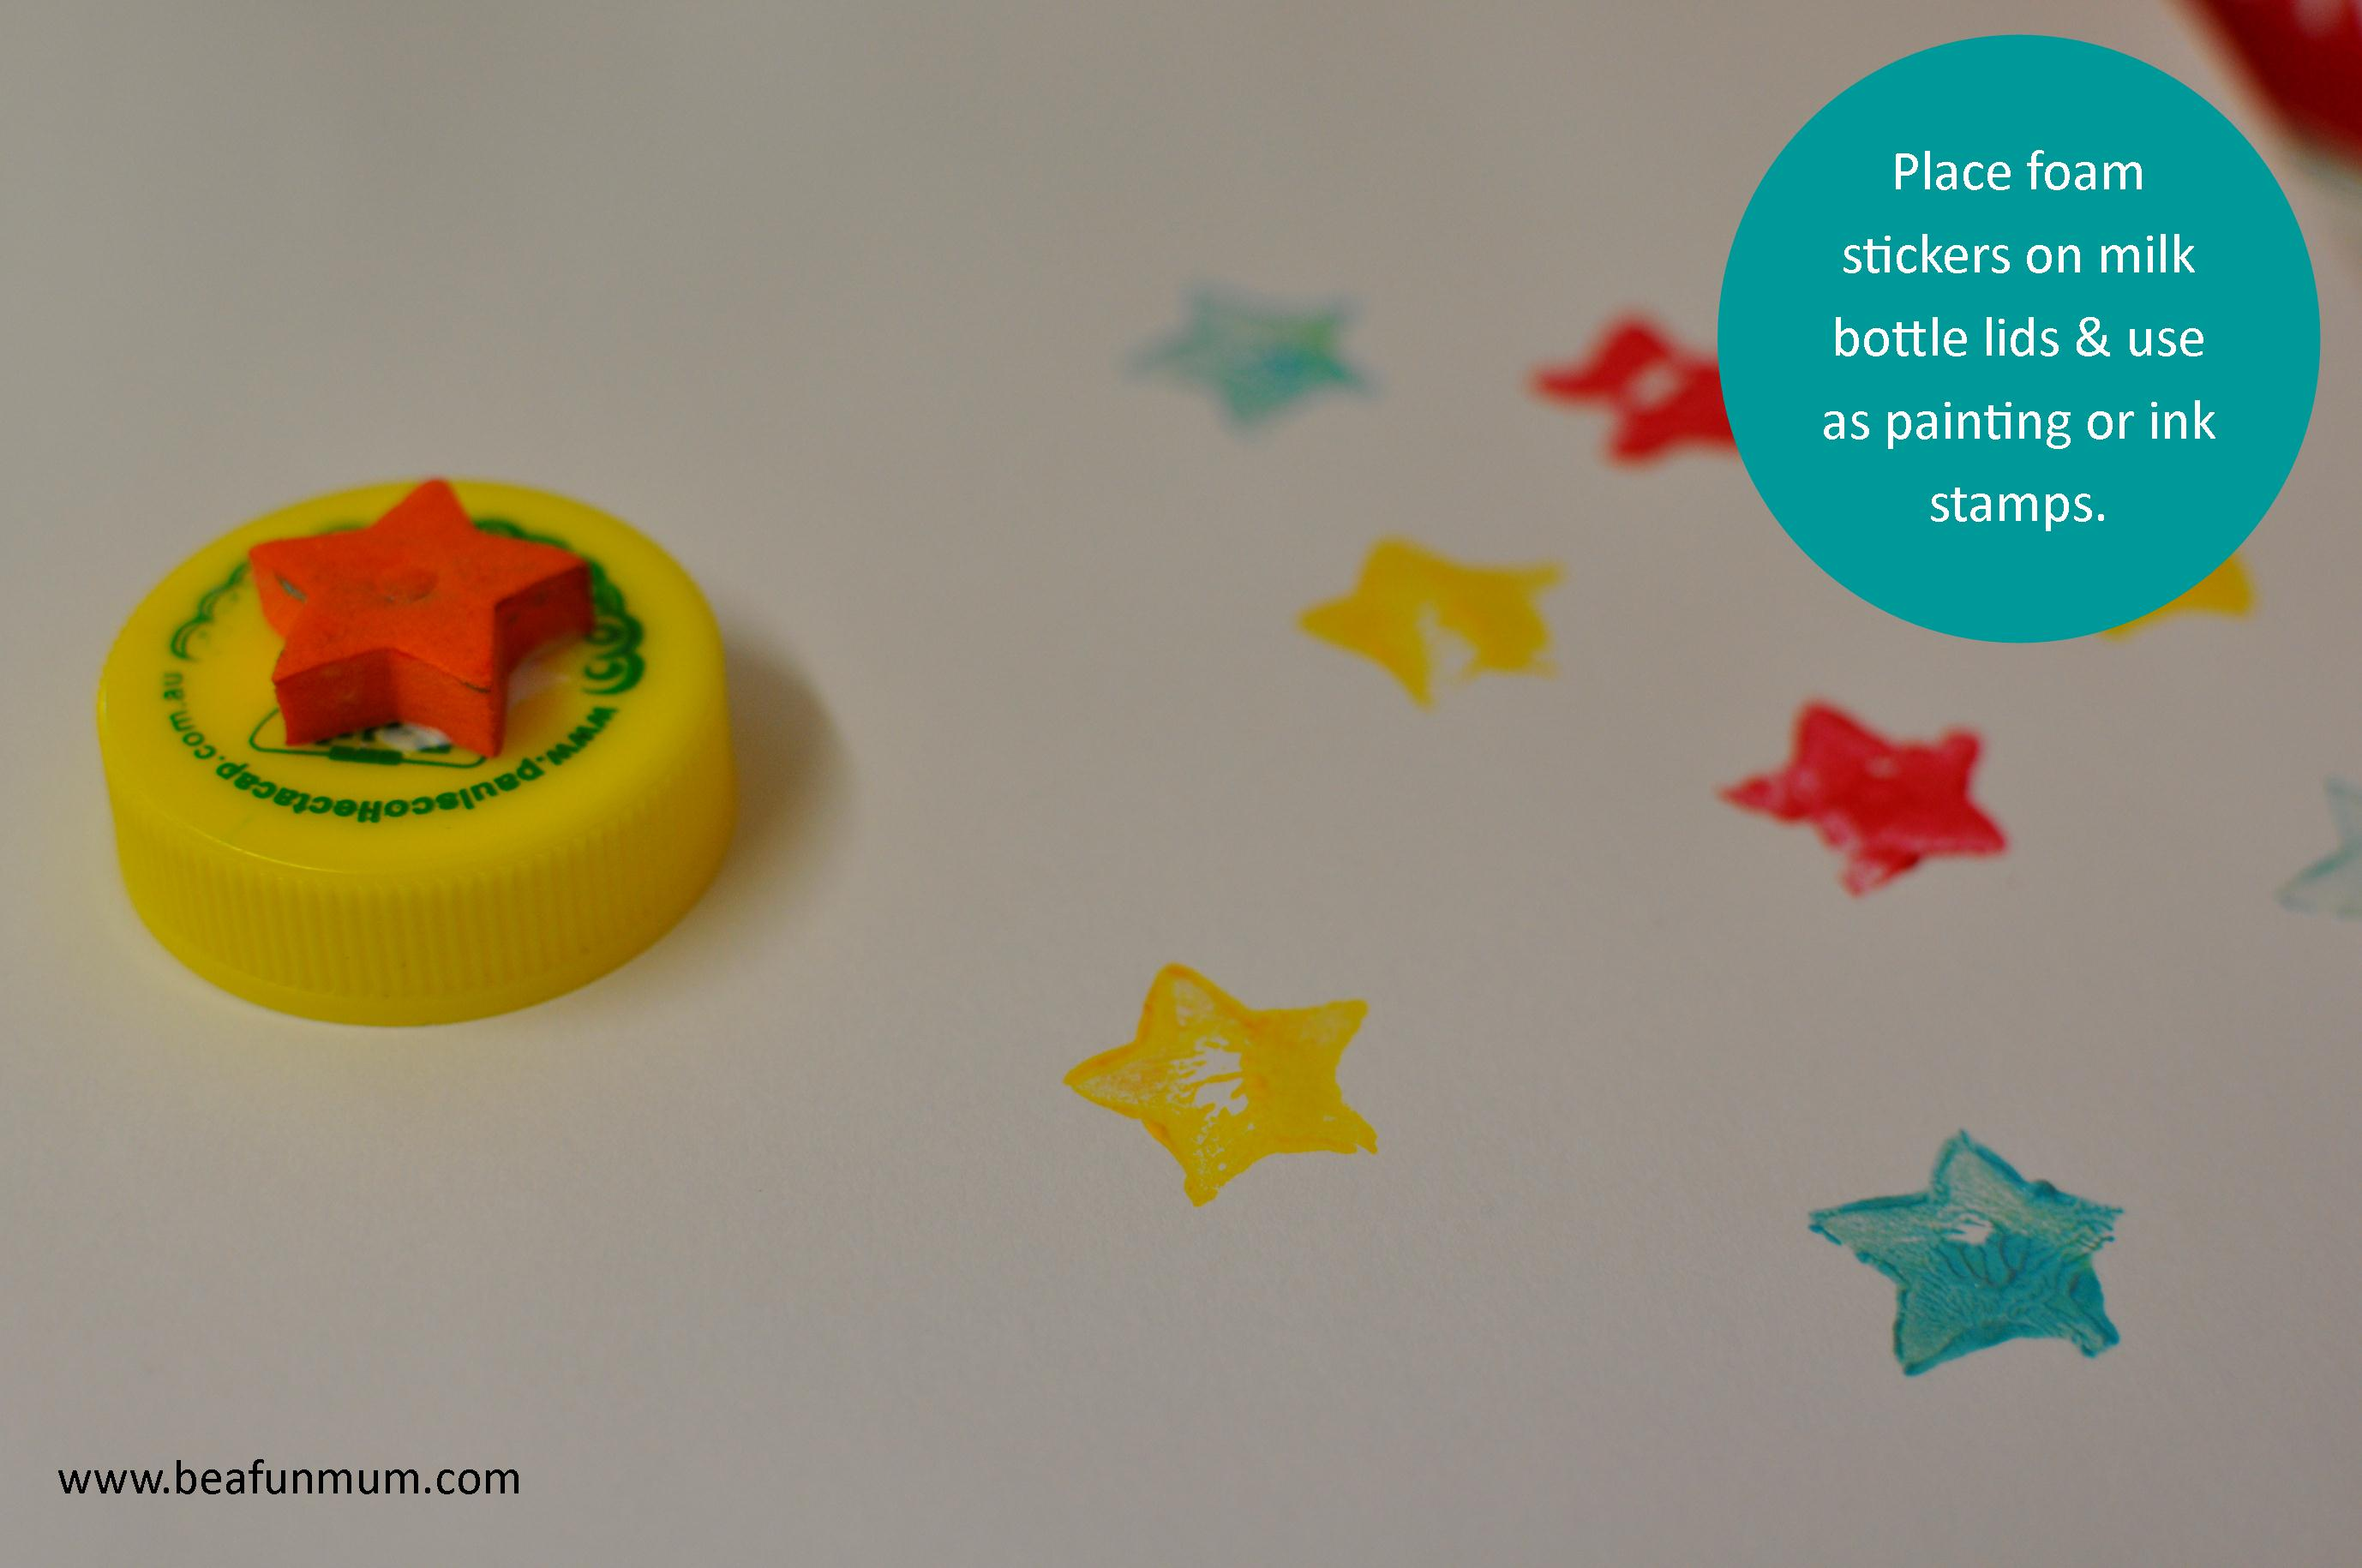 milk bottle lid stamps